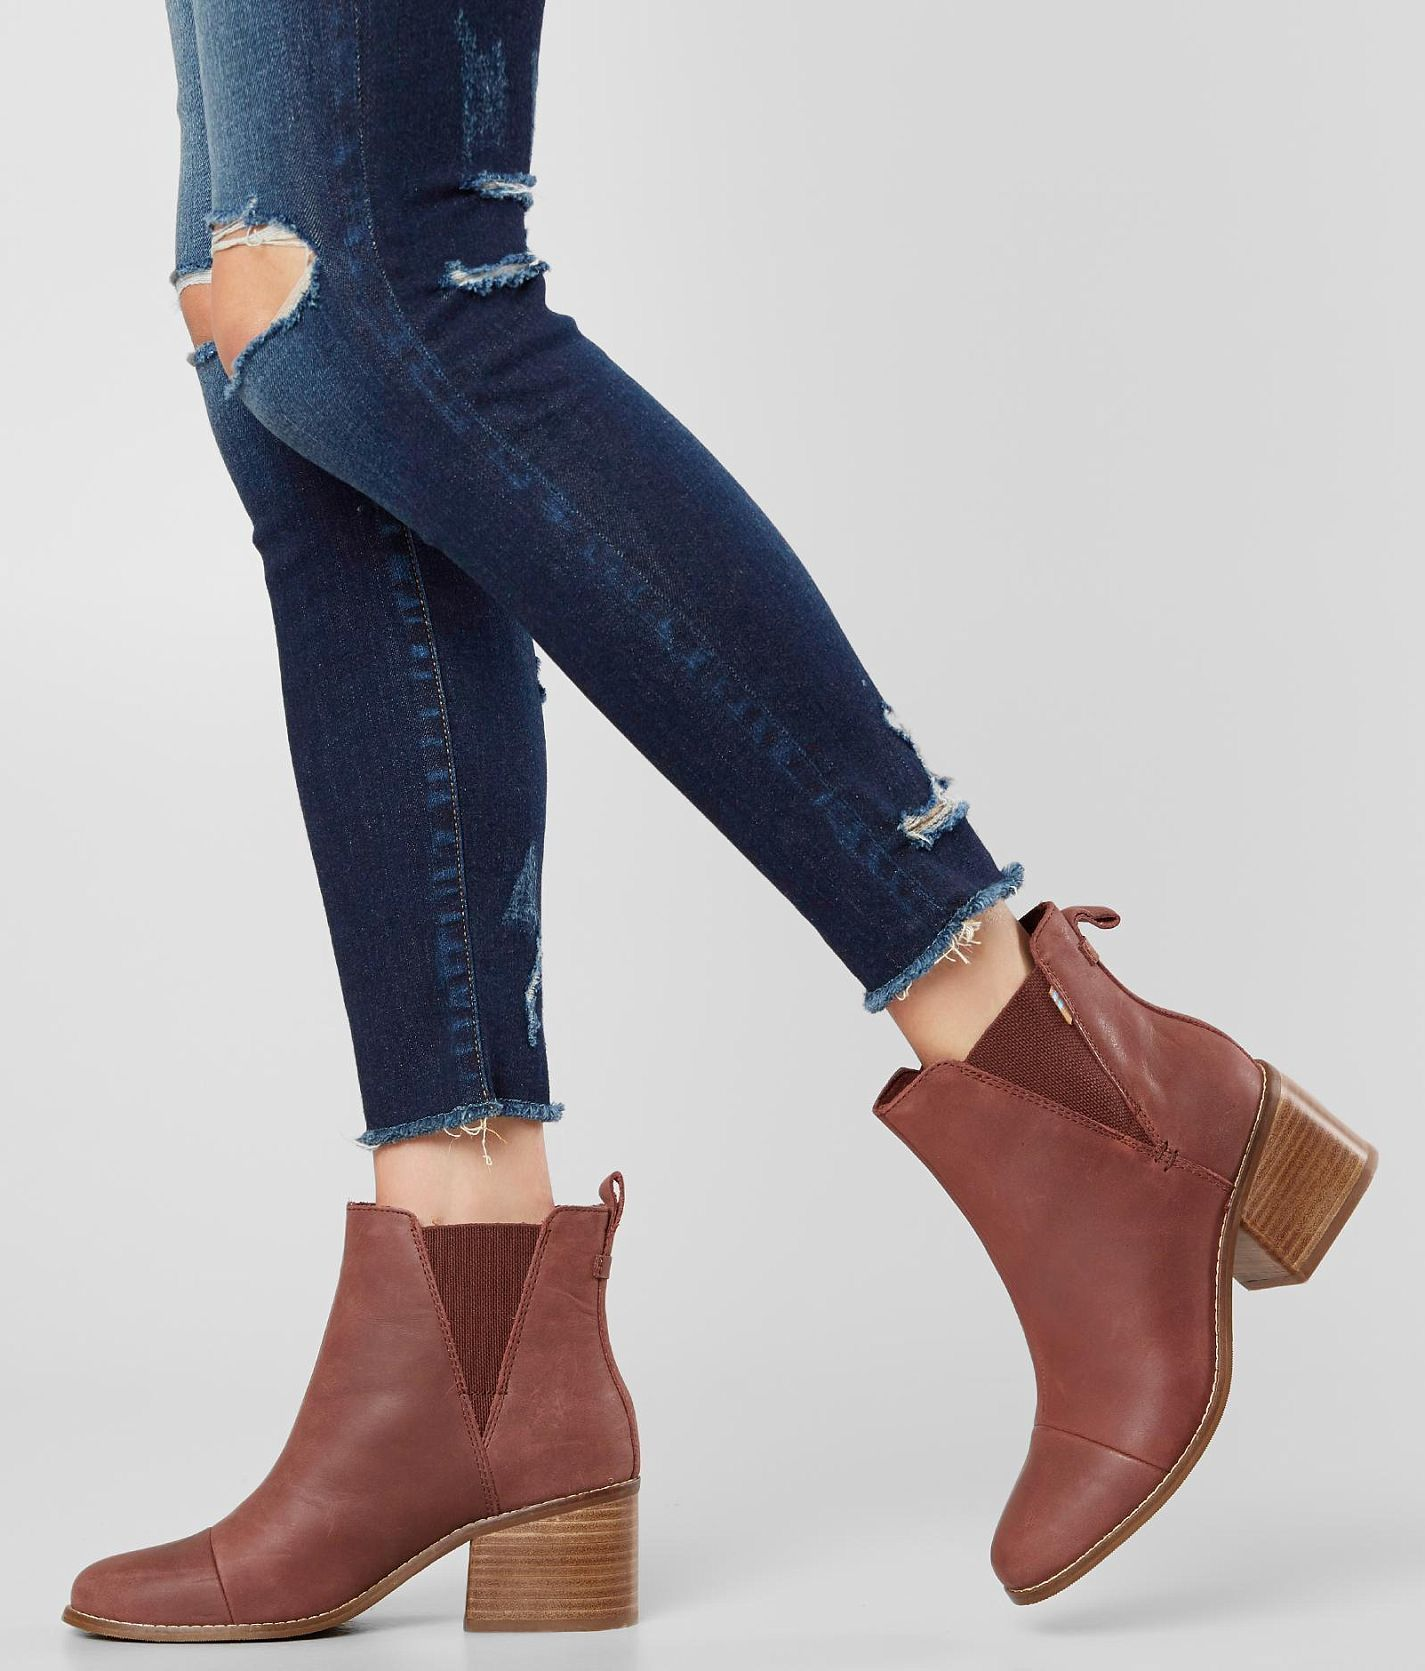 924d2d59fc97f TOMS Esme Ankle Boot - Women s Shoes in Burnt Henna Leather